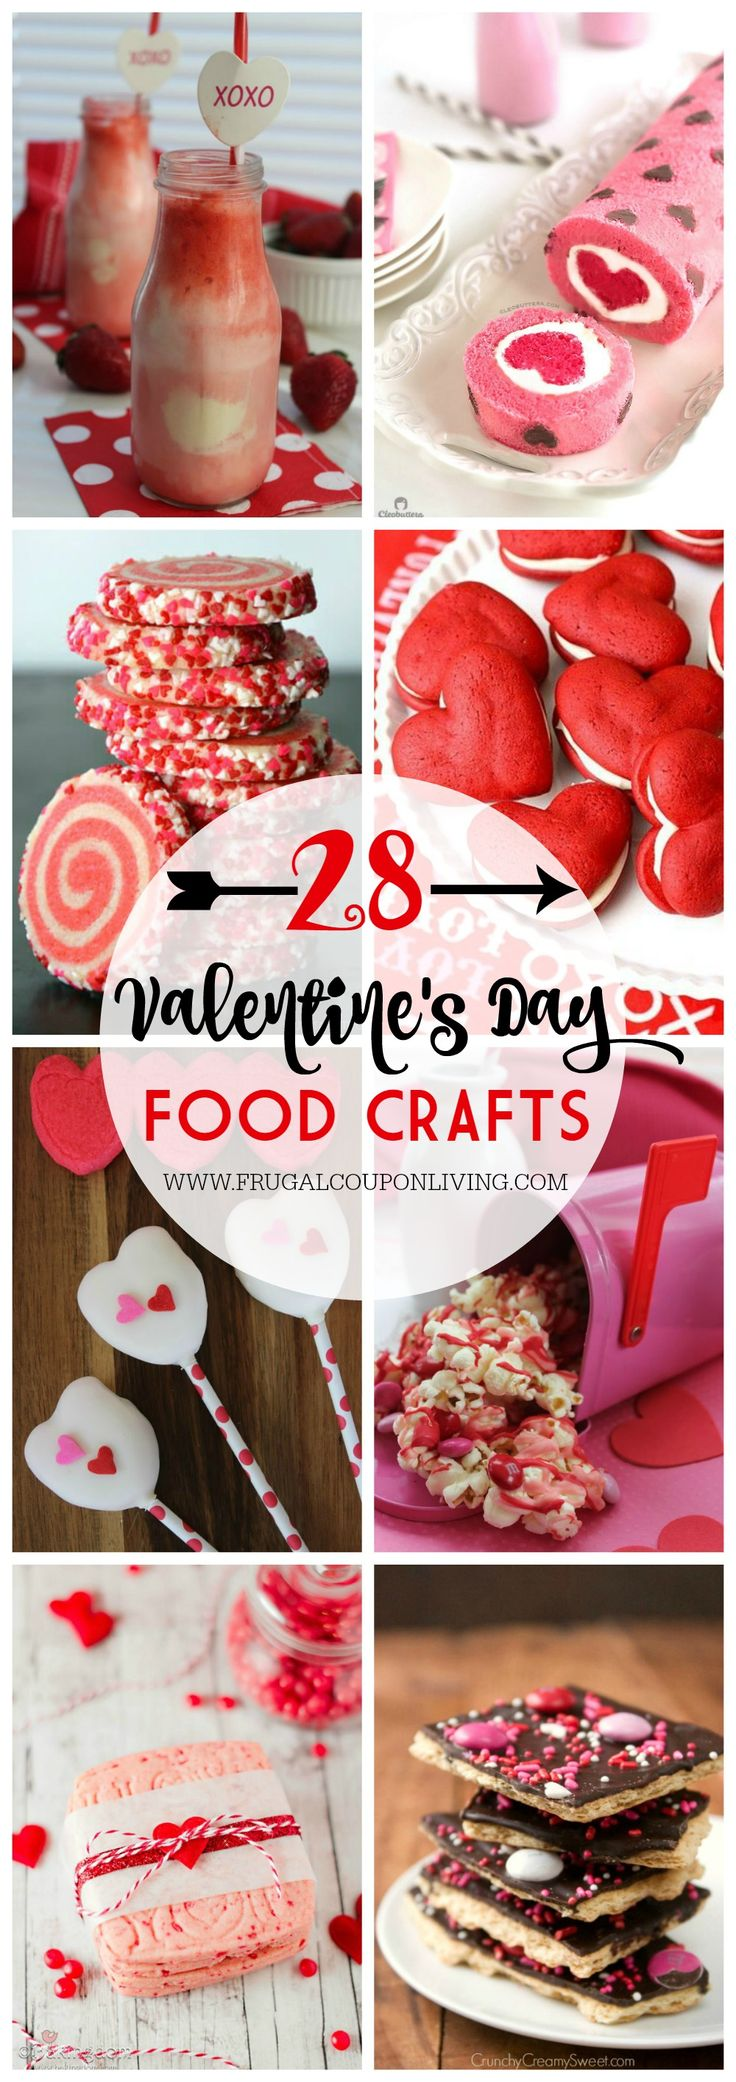 17 best ideas about homemade valentines on pinterest homemade valentine cards kids valentines. Black Bedroom Furniture Sets. Home Design Ideas